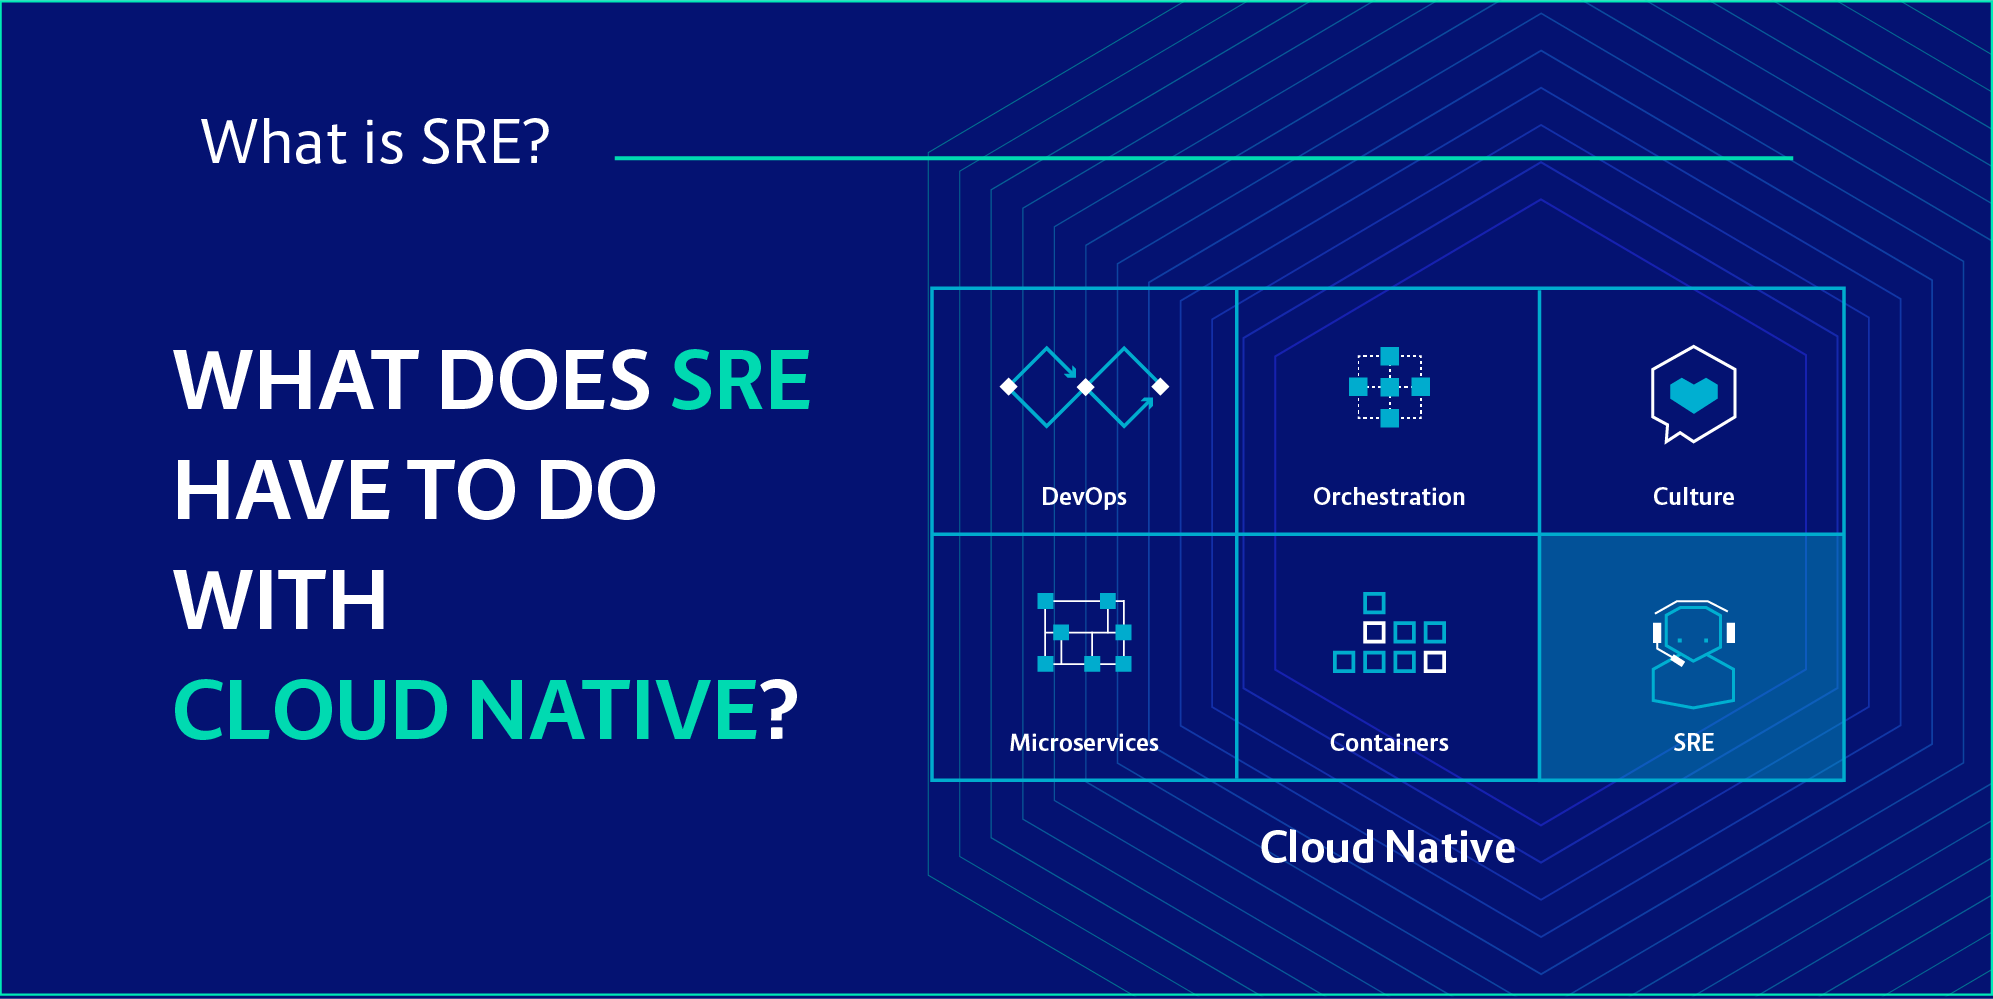 What Does SRE Have to Do With Cloud Native?